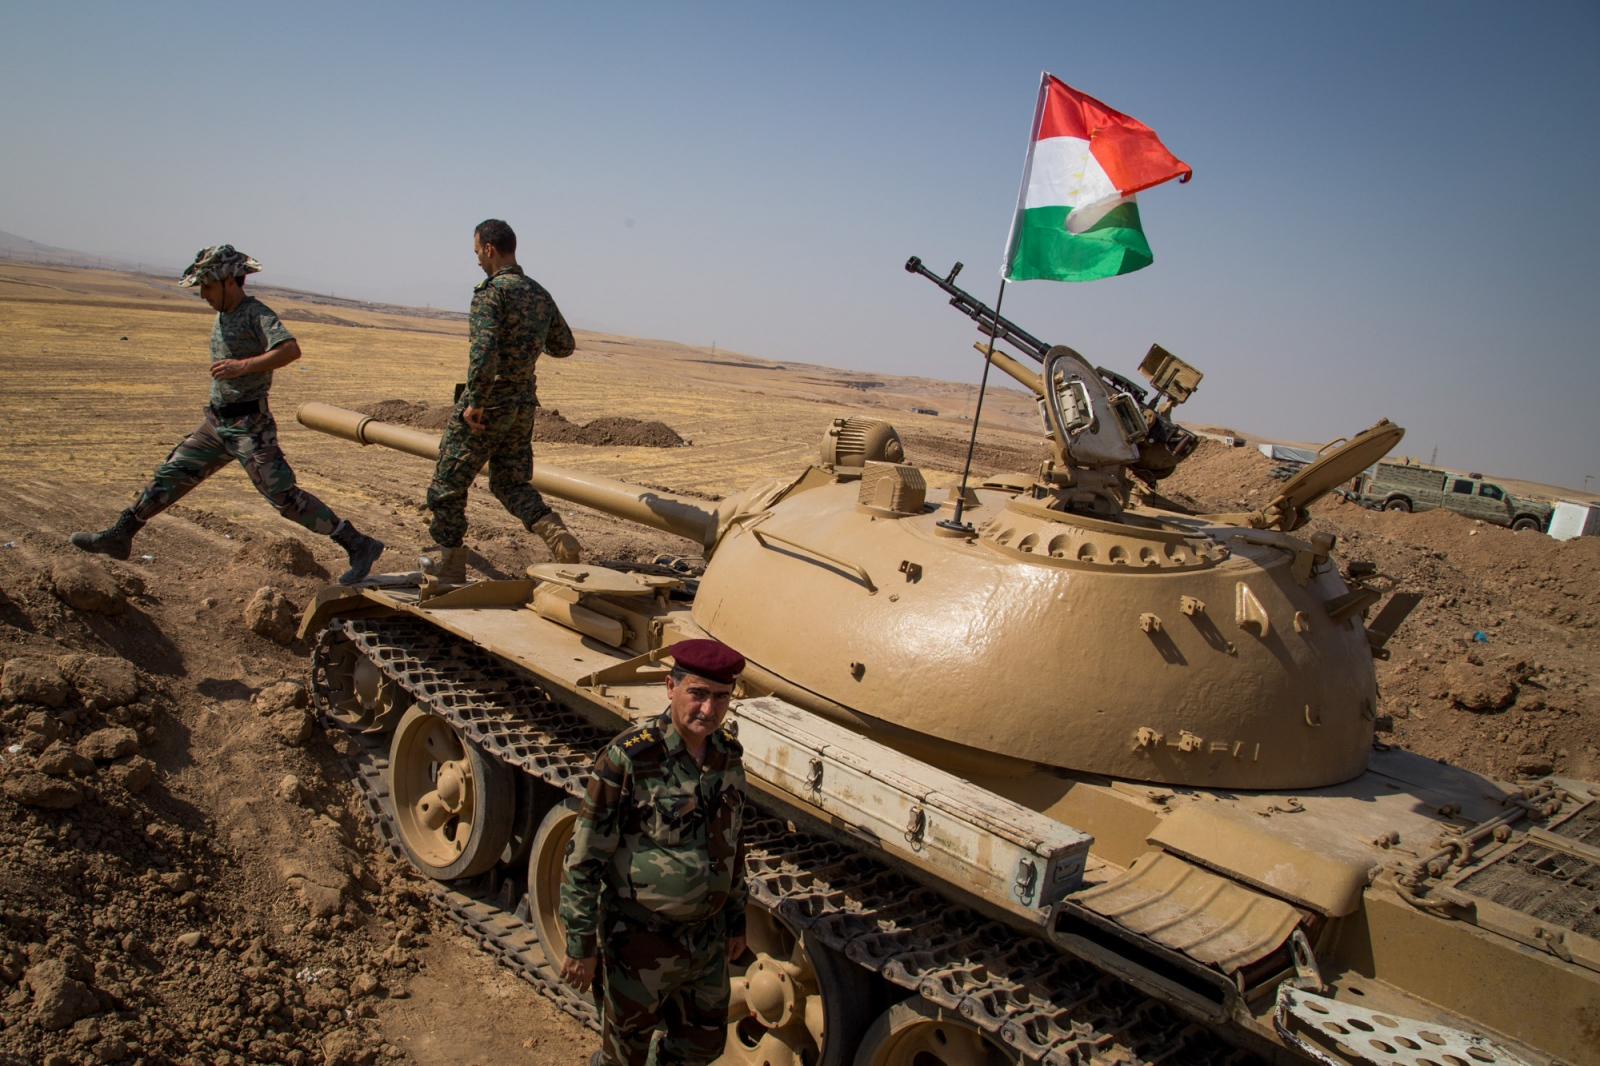 Peshmerga soldiers defend the Khazer frontline outside Mosul, Iraq.